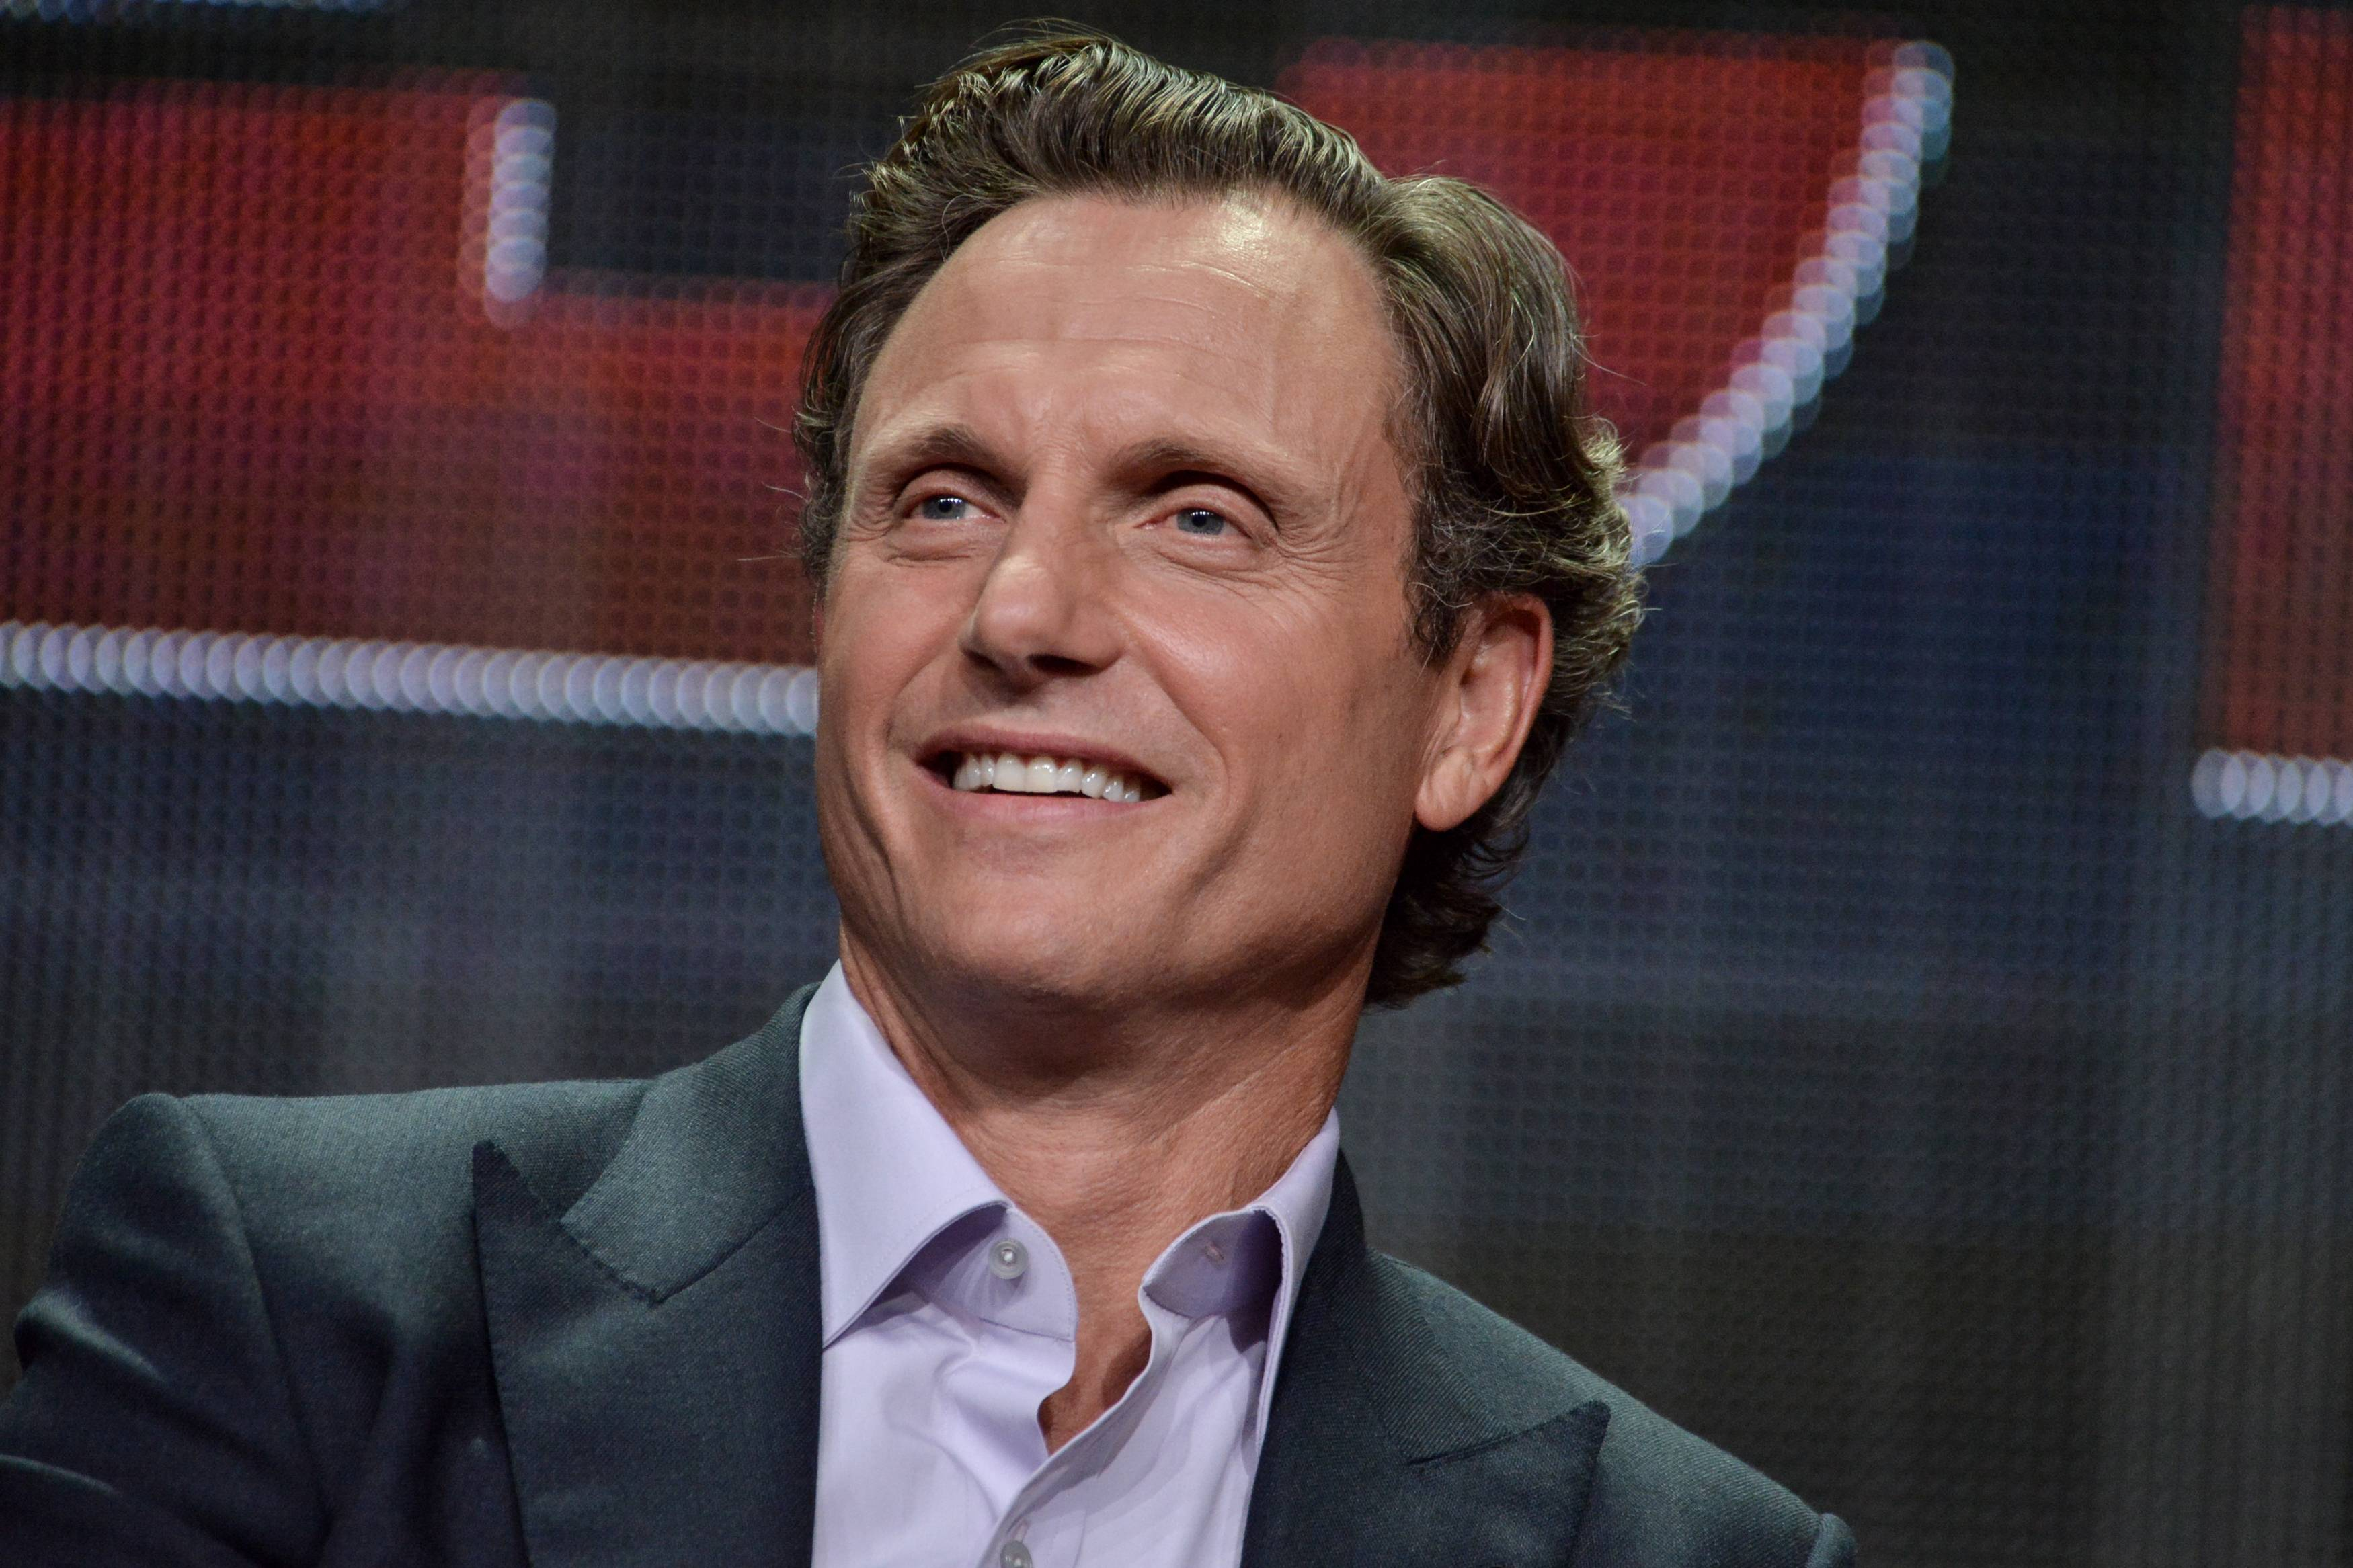 """Scandal"" star Tony Goldwyn has taken on behind-the-camera roles as producer, director and writer for the new drama ""The Divide."" The first of eight episodes premieres at 8 p.m., July 16, on WeTV."